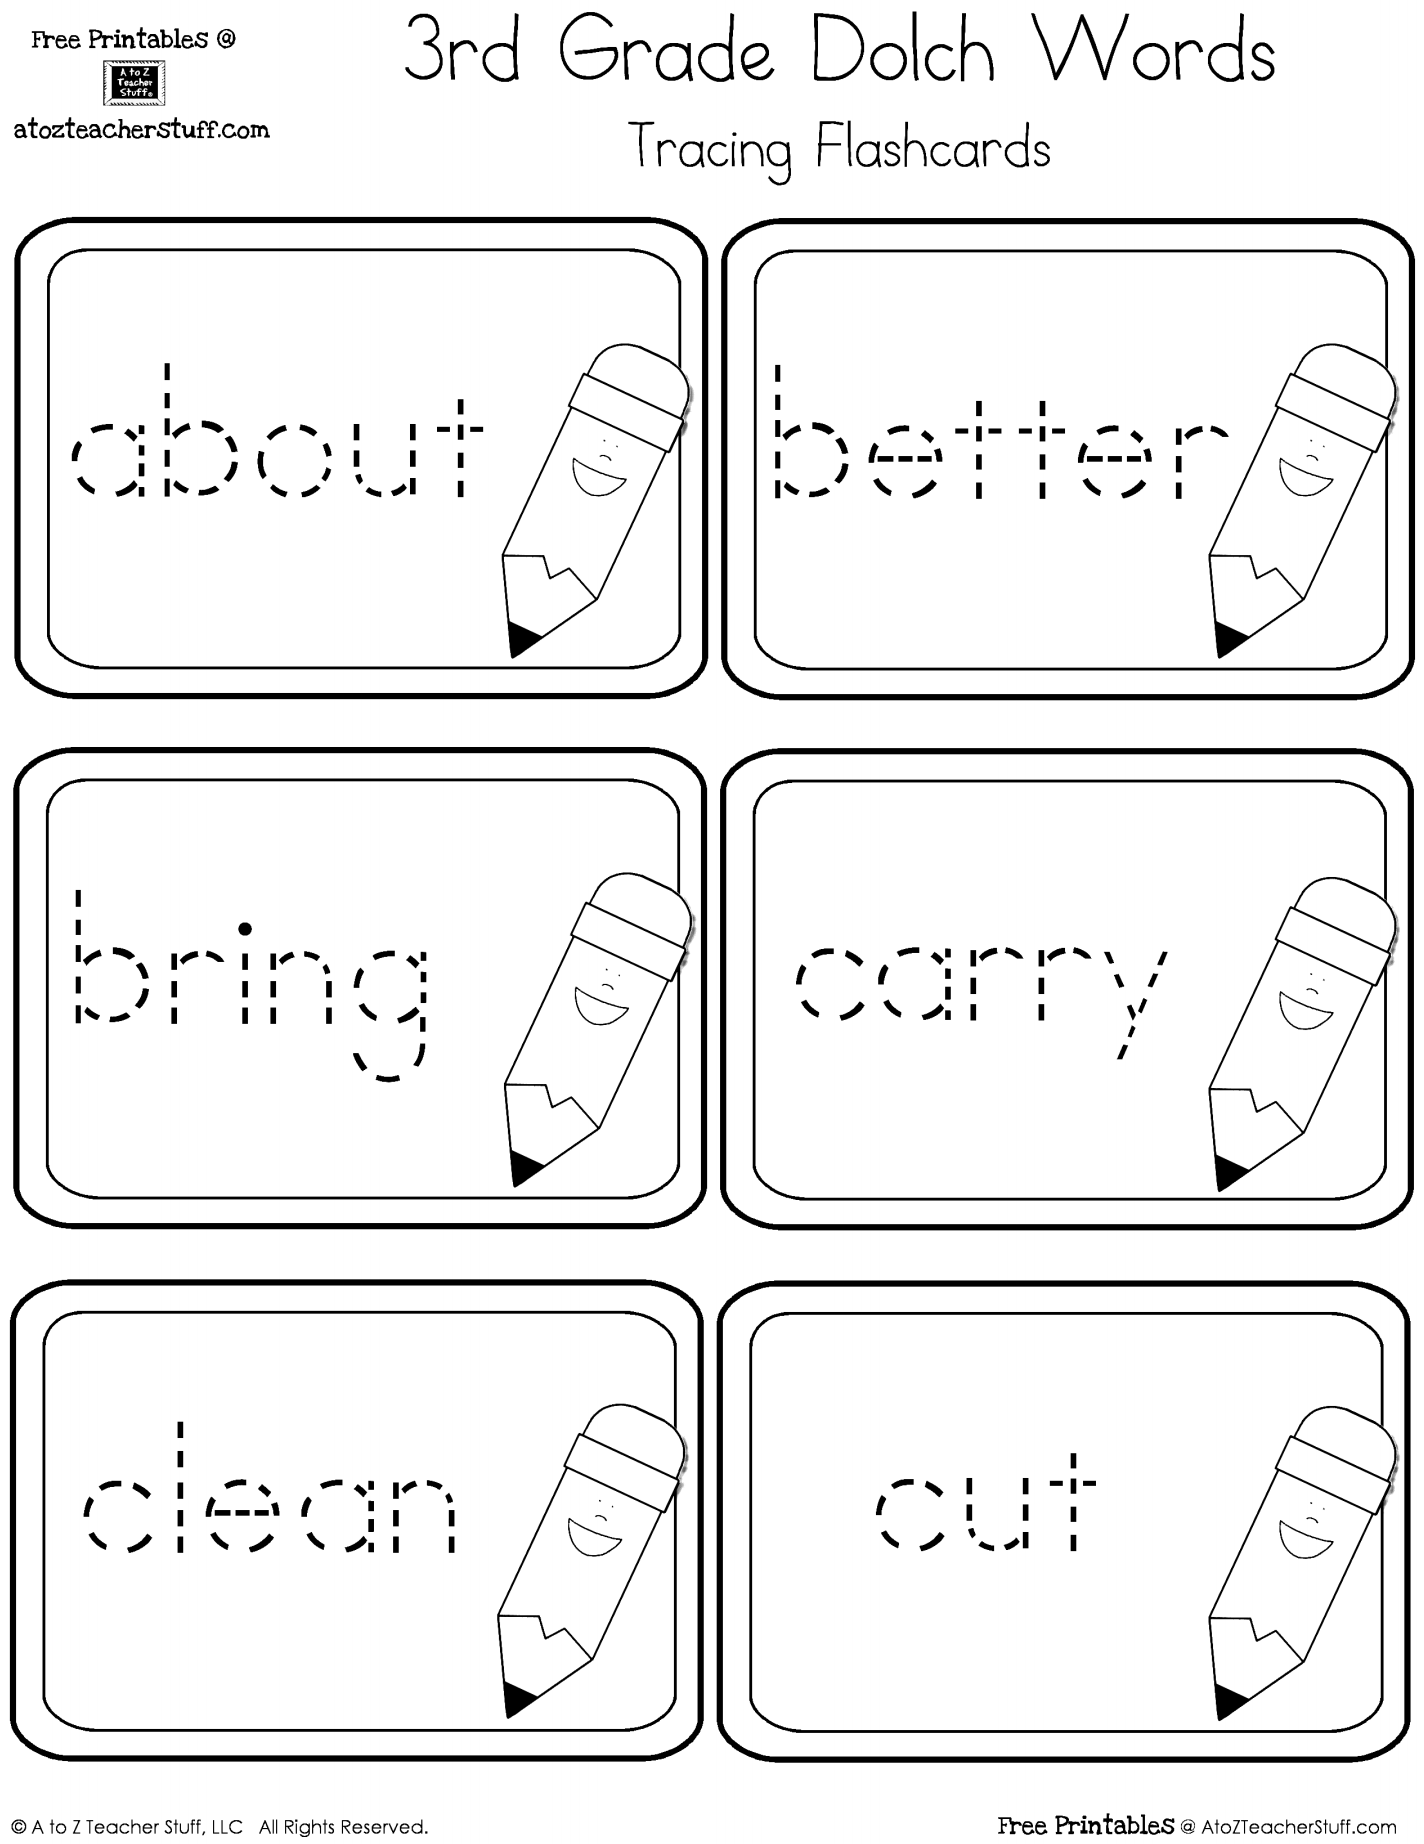 Printables Dolch Sight Word Worksheets third grade dolch sight words tracing flashcards a to z teacher 3rd cards free printables